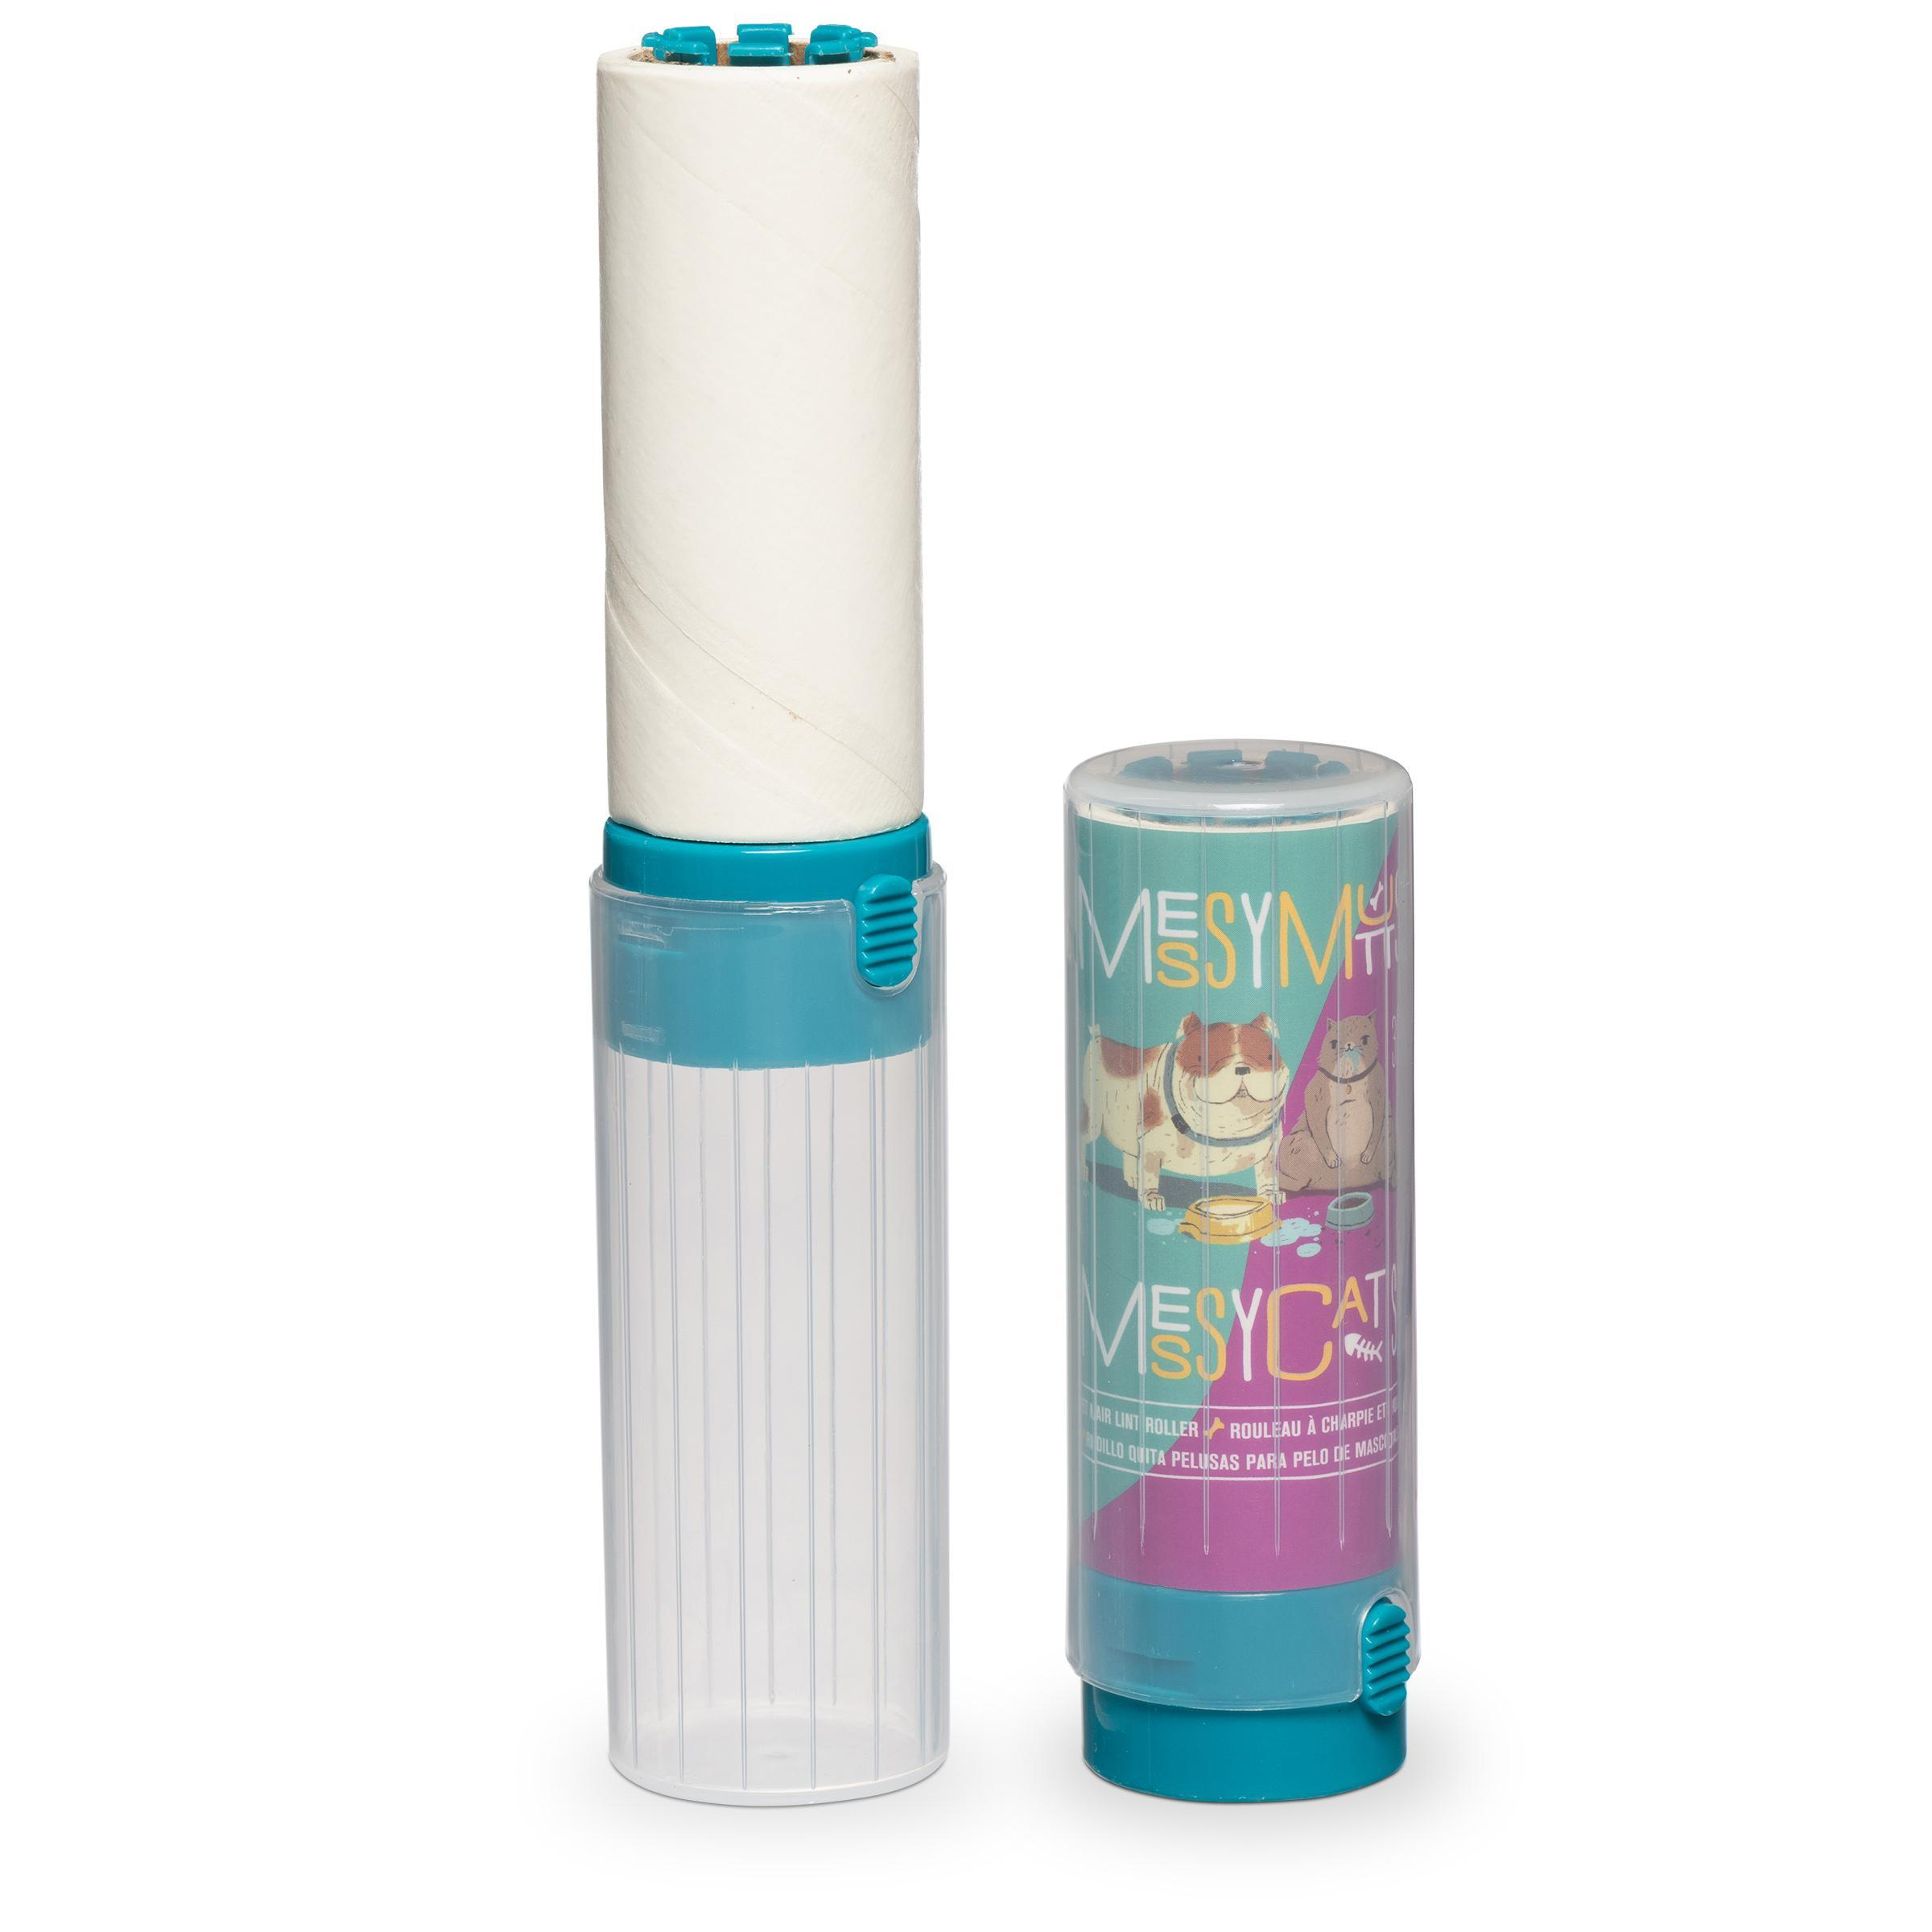 Messy Mutts Pet Hair Lint Roller, 6.8-in